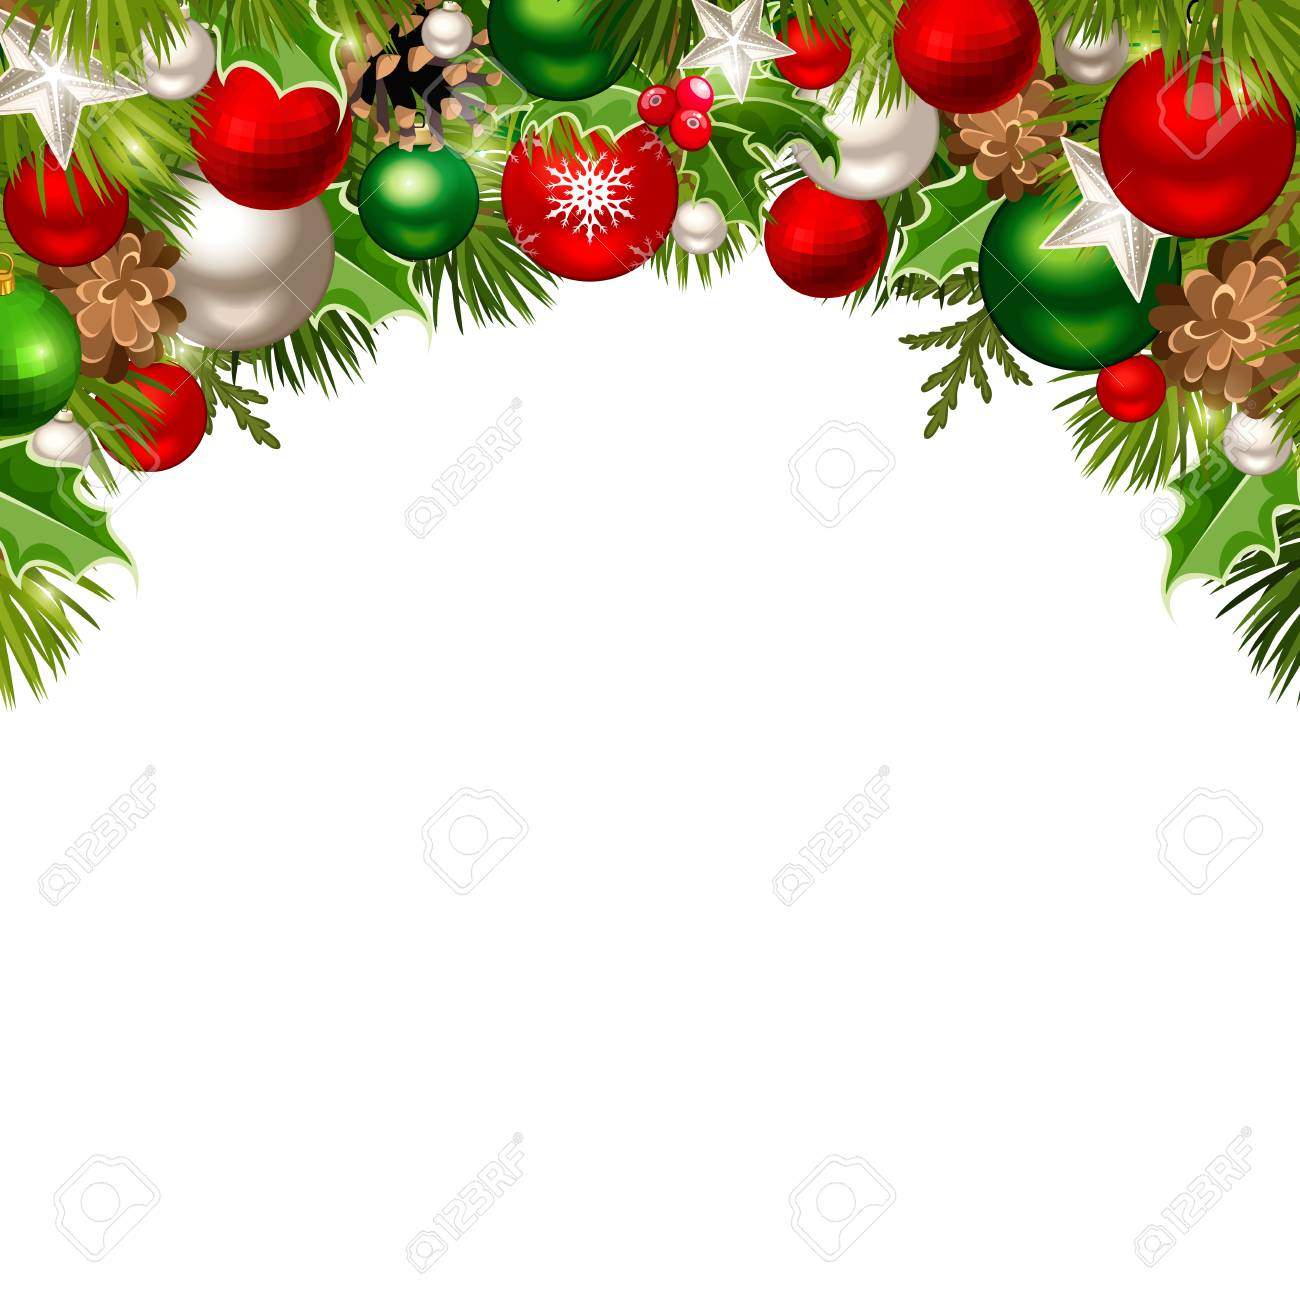 vector christmas background with red green and silver balls royalty free cliparts vectors and stock illustration image 89472146 vector christmas background with red green and silver balls